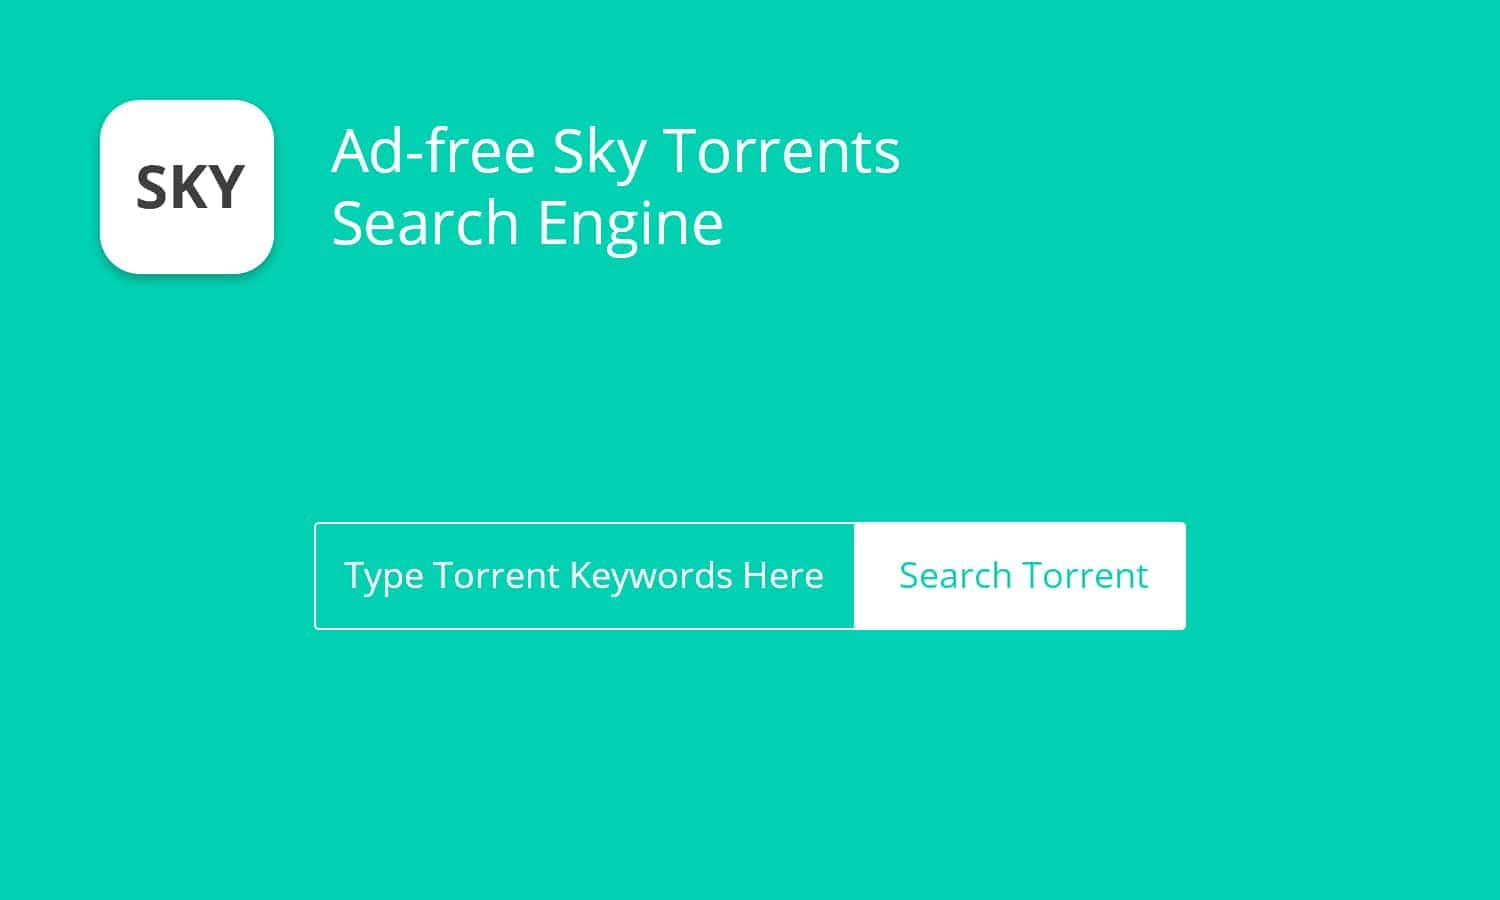 Ad-free Sky Torrents Search Engine